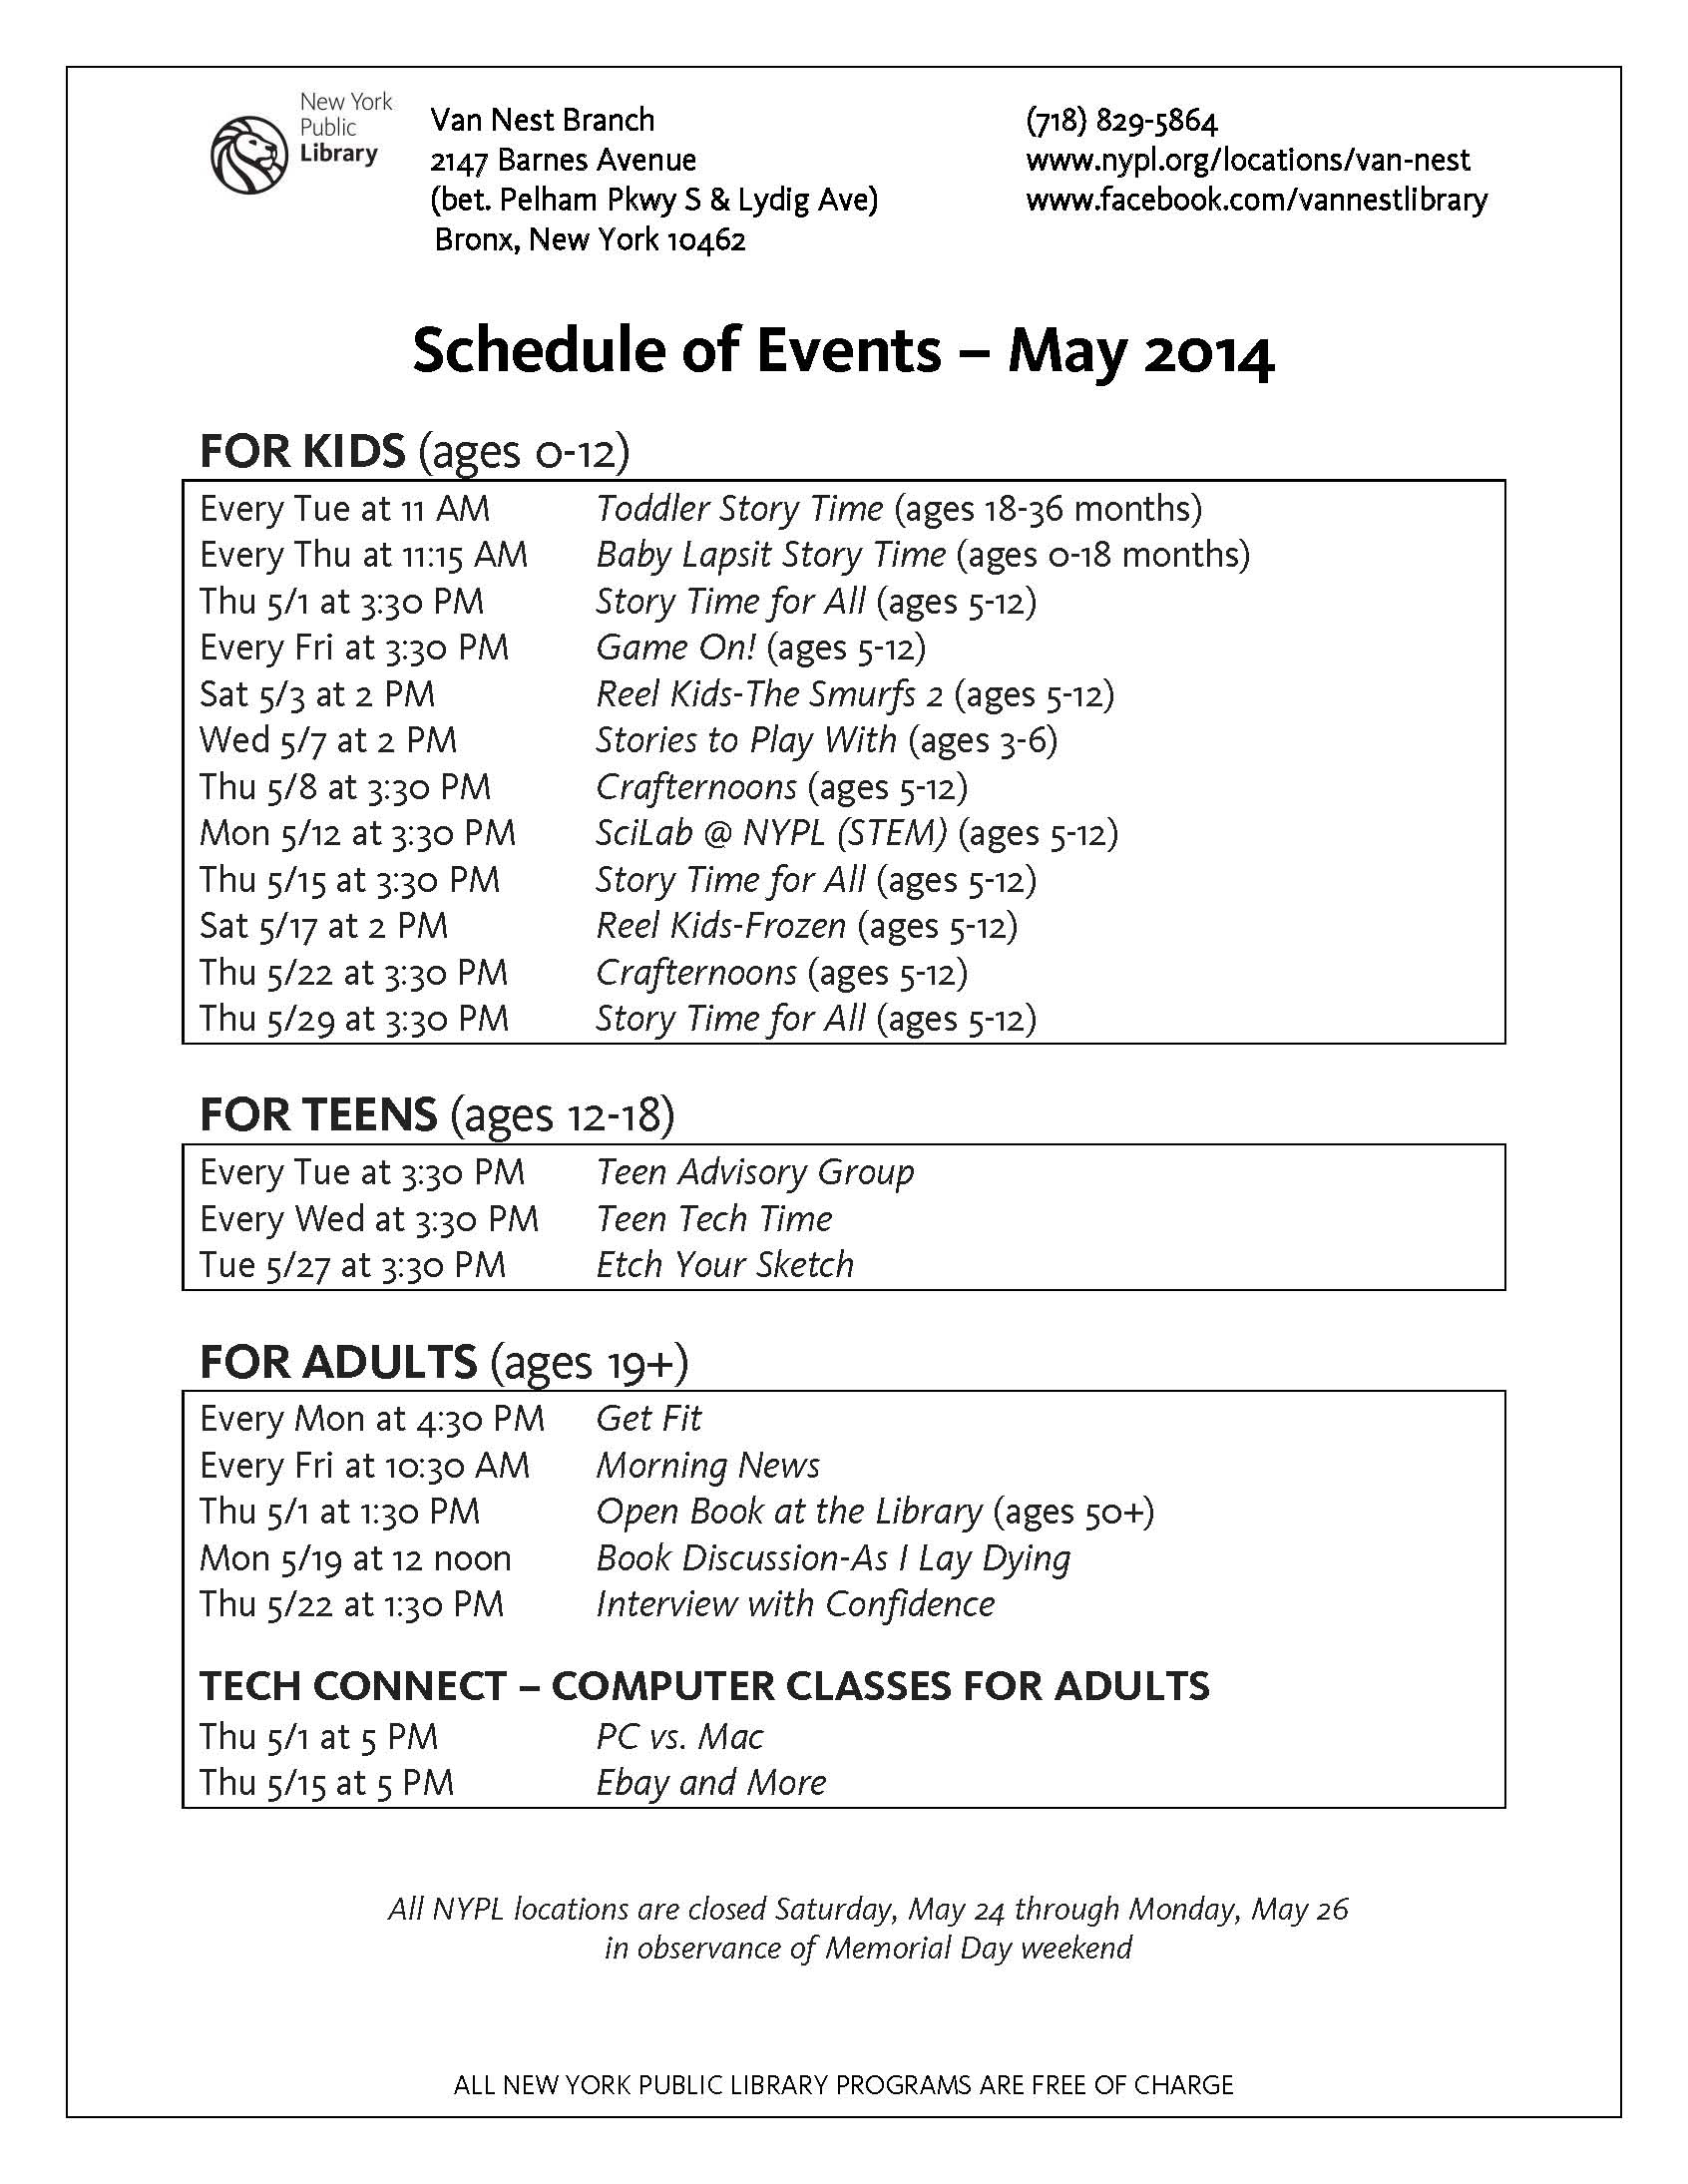 Van Nest Library Events – May 2014